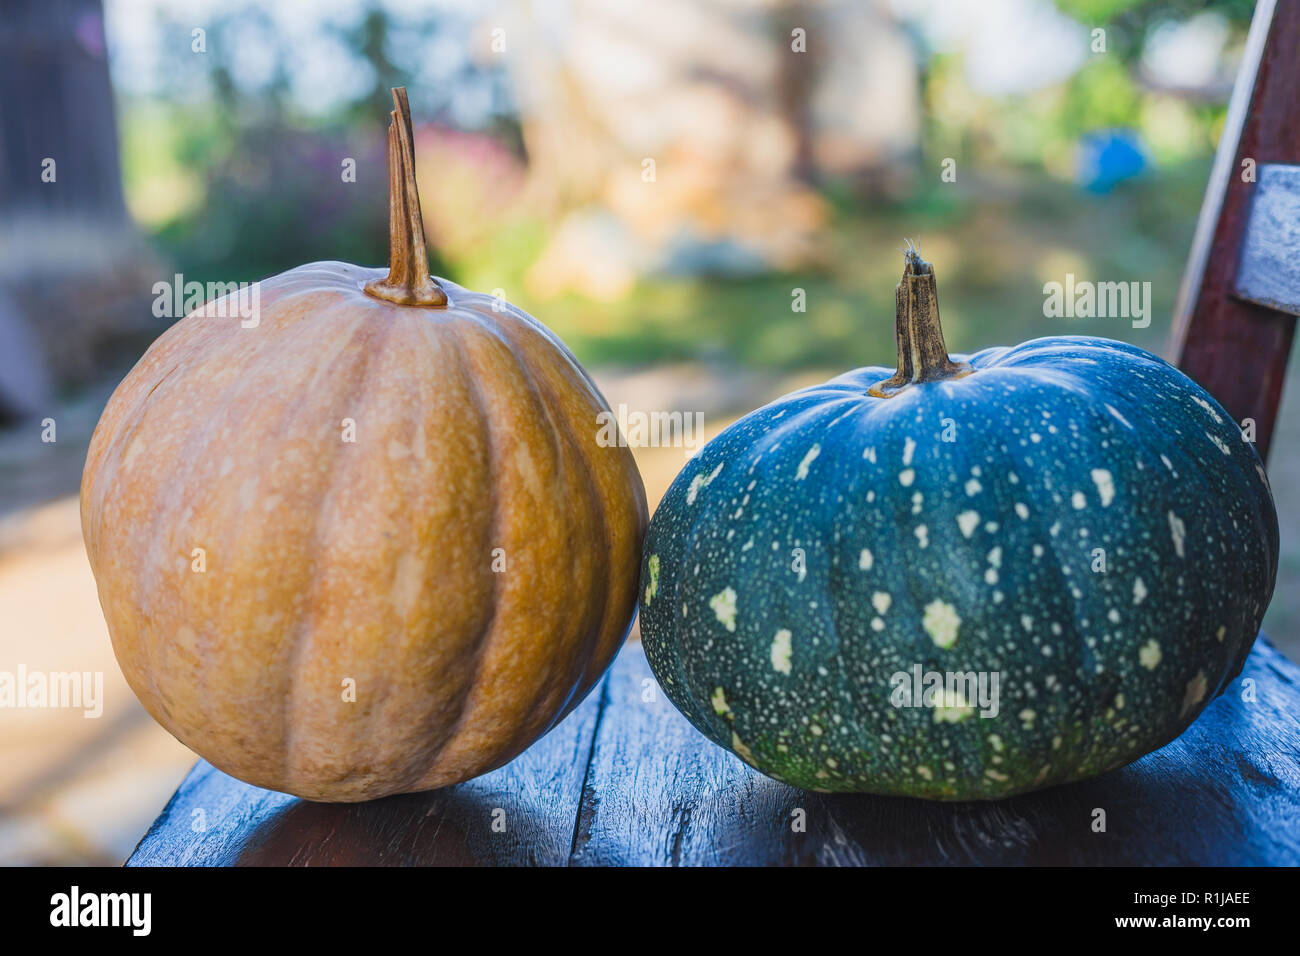 Countryside's Organic Yellow and green pumpkins together for creative use. - Stock Image